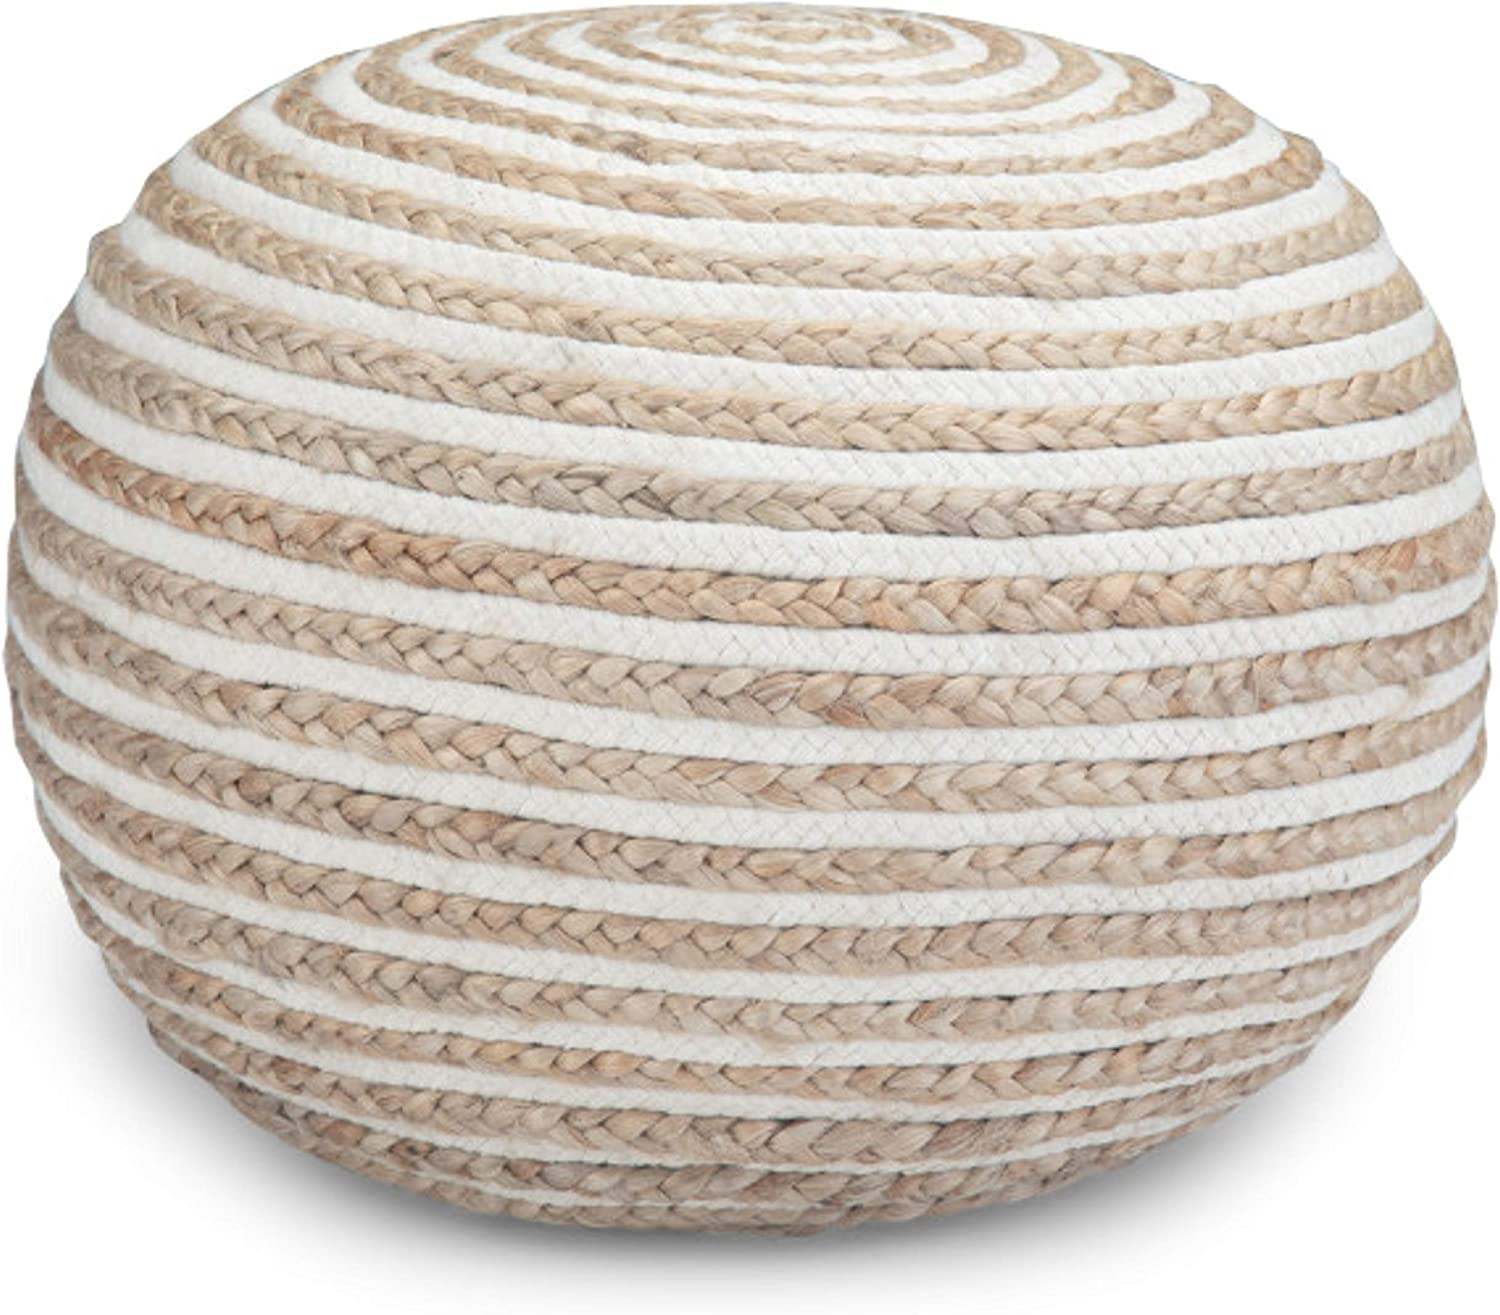 SIMPLIHOME Yolanda Round Pouf, Footstool, Upholstered in Natural Hand Braided Jute and Cotton, for the Living Room, Bedroom and Kids Room, Contemporary, Modern